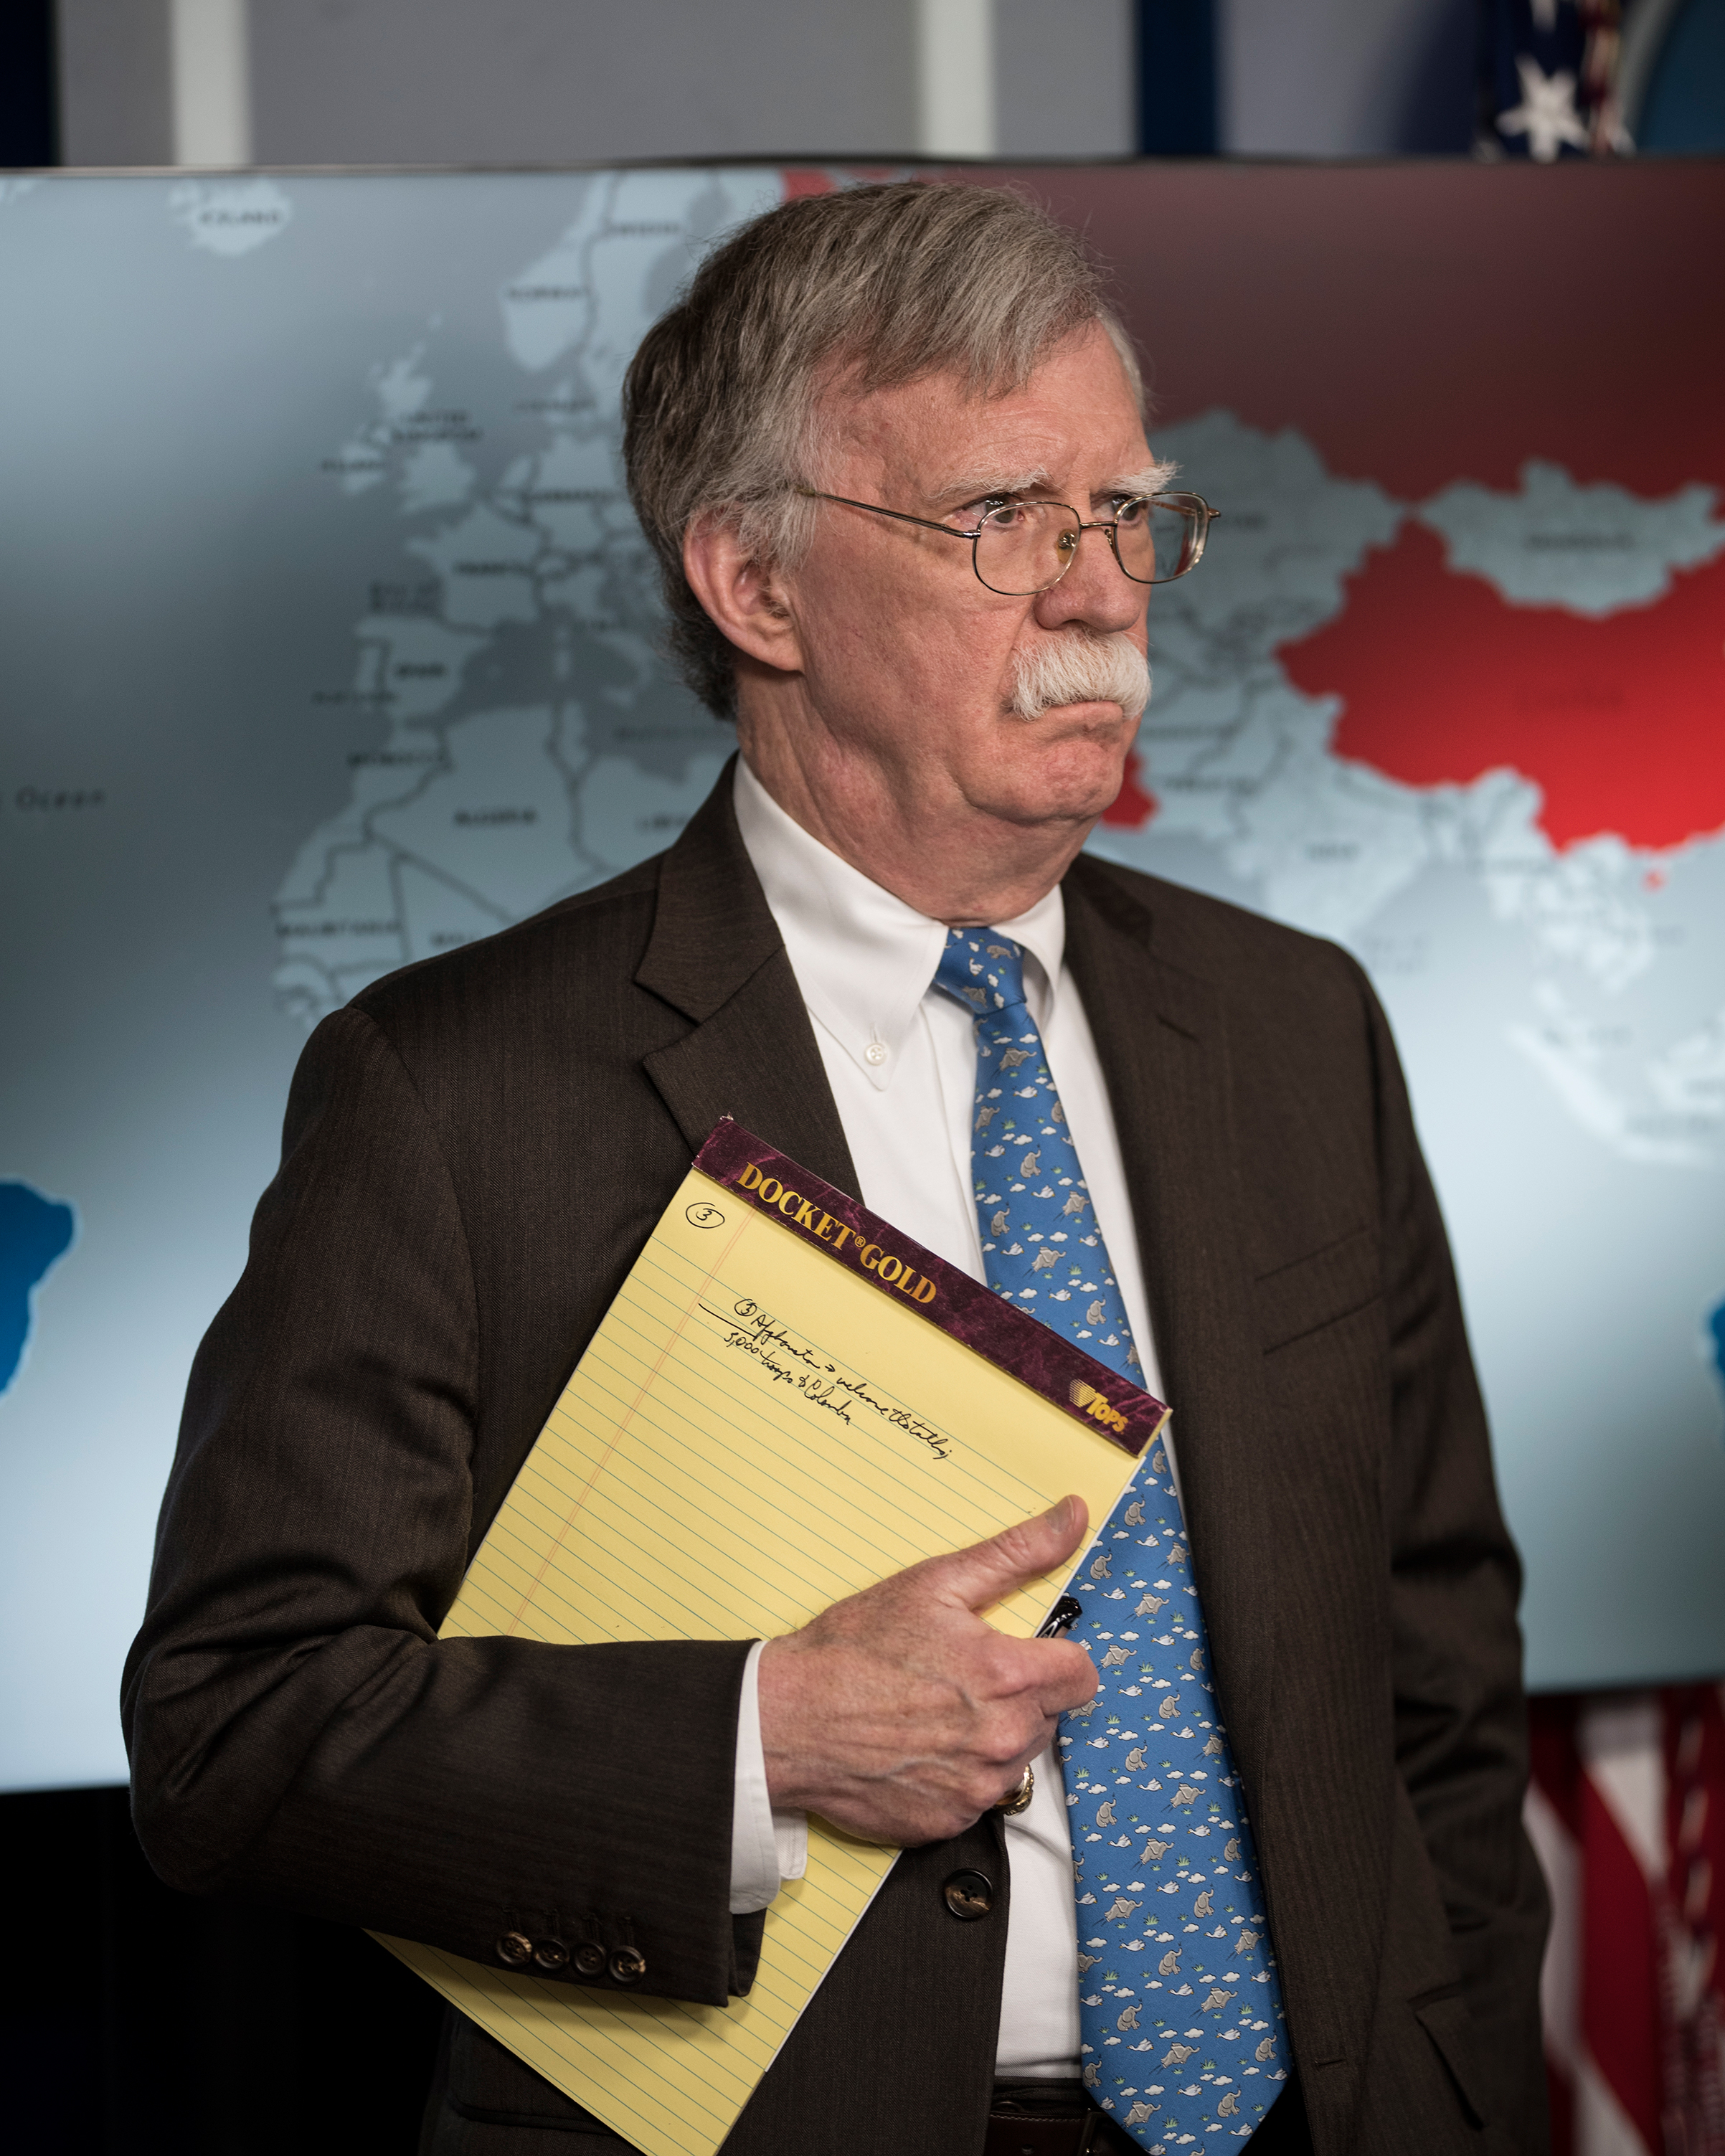 National security adviser John Bolton during a White House press briefing in Washington, D.C., on Jan. 28, 2019.